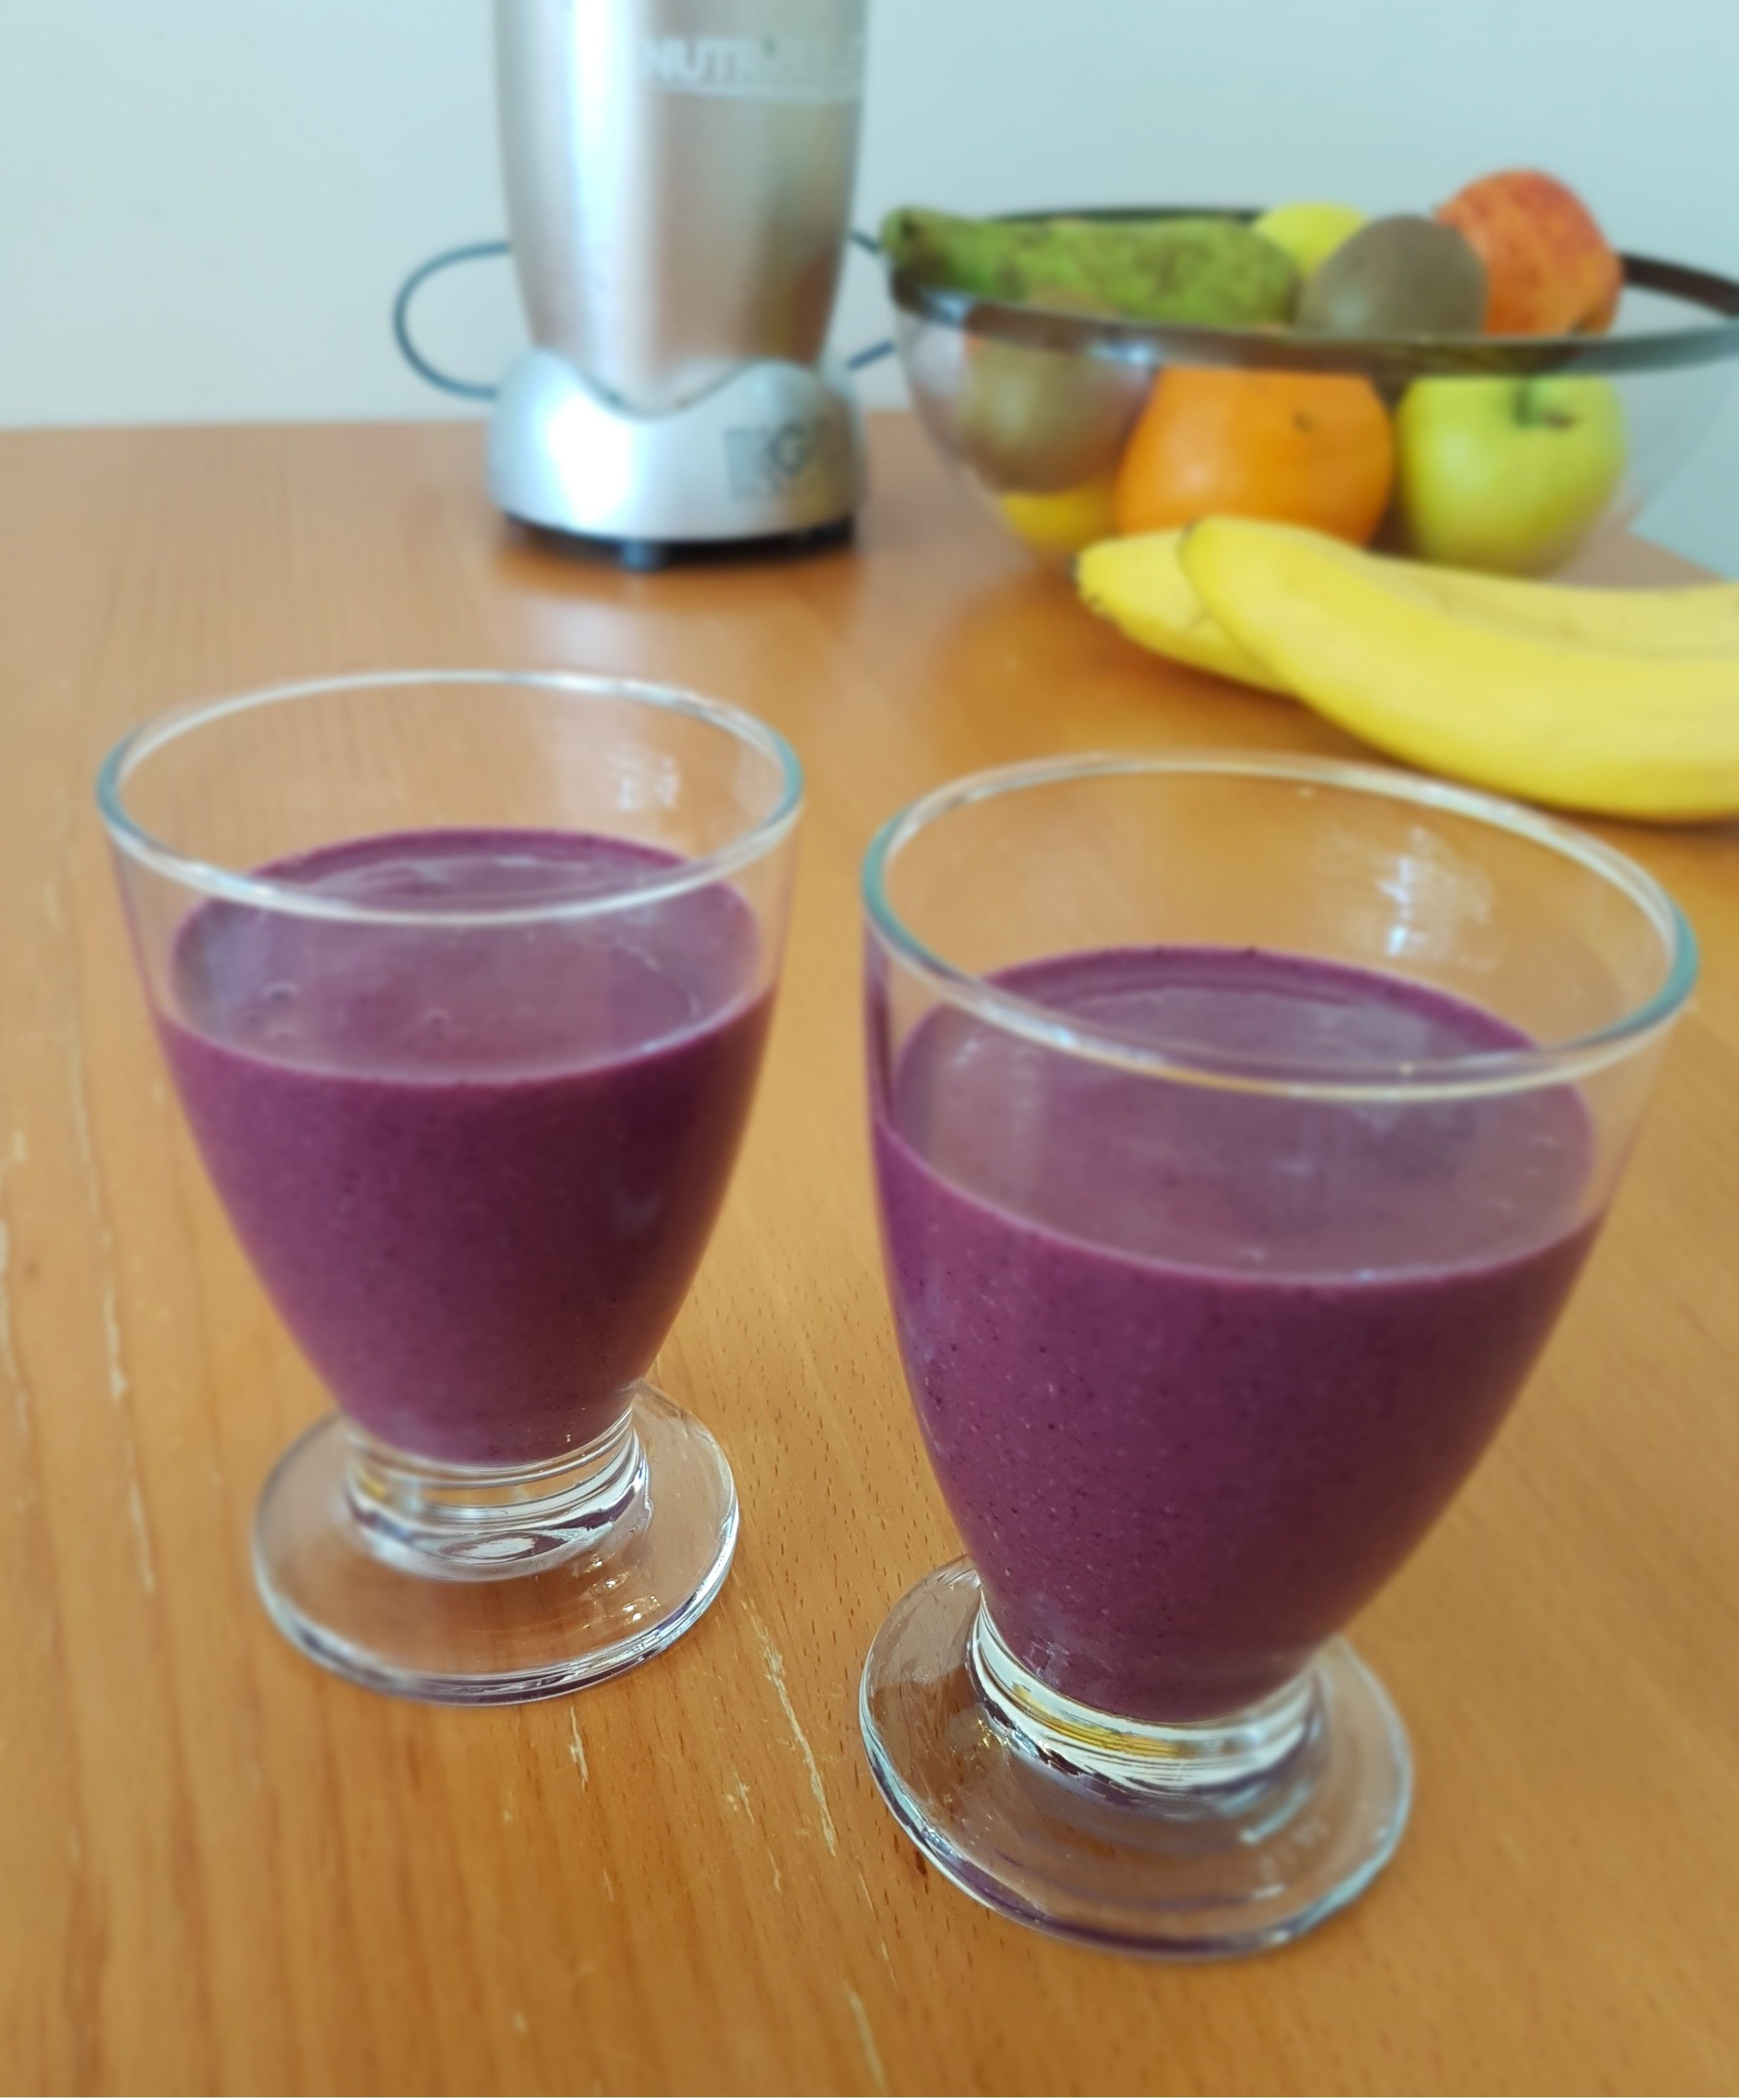 How To Make A Blueberry Smoothie Without Yogurt And Banana